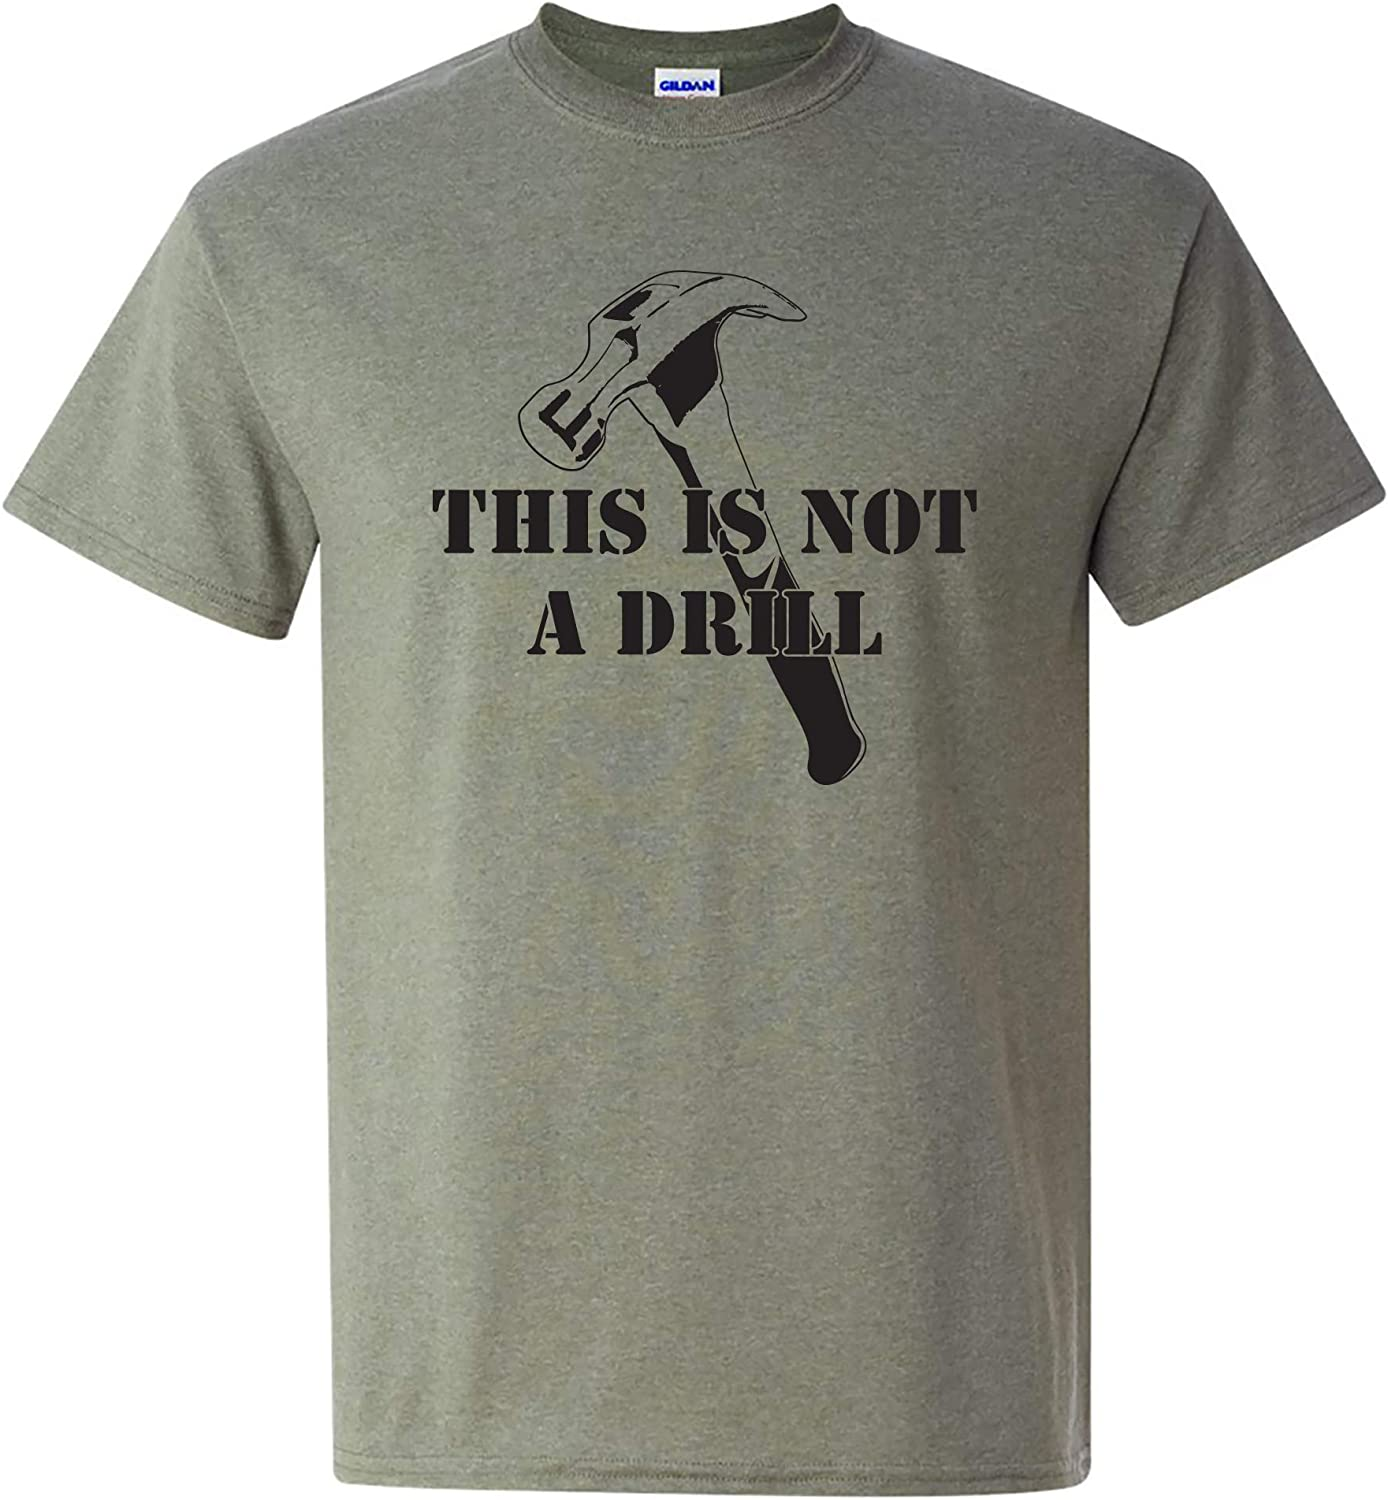 This is Not A Drill - Funny Dad Joke Handyman Construction Humor T Shirt